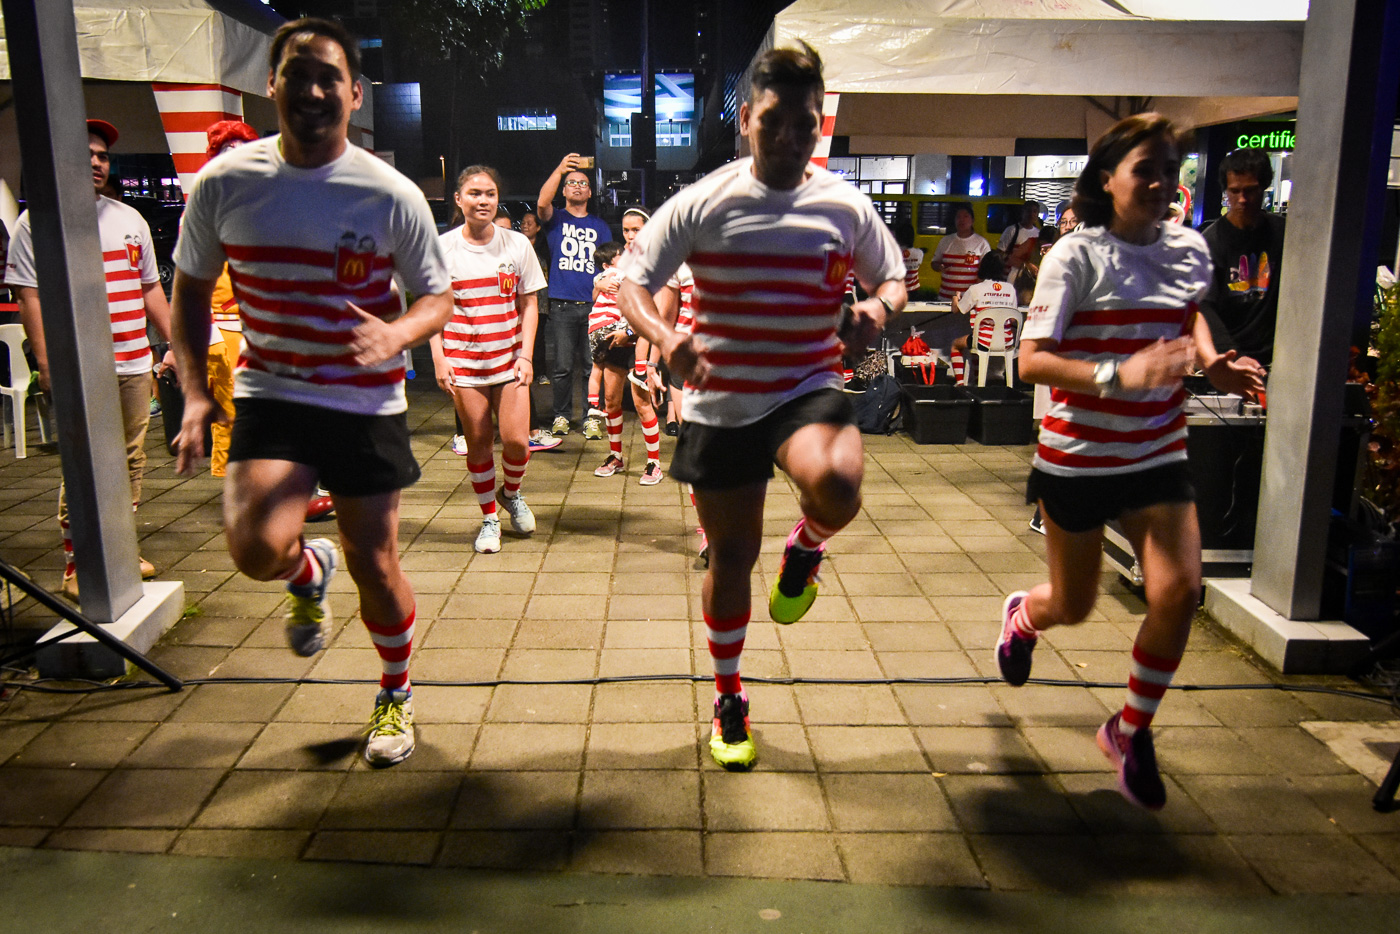 RUN FOR READING. Ahead of the actual run, McDonaldu2019s held a running clinic for select members of the media